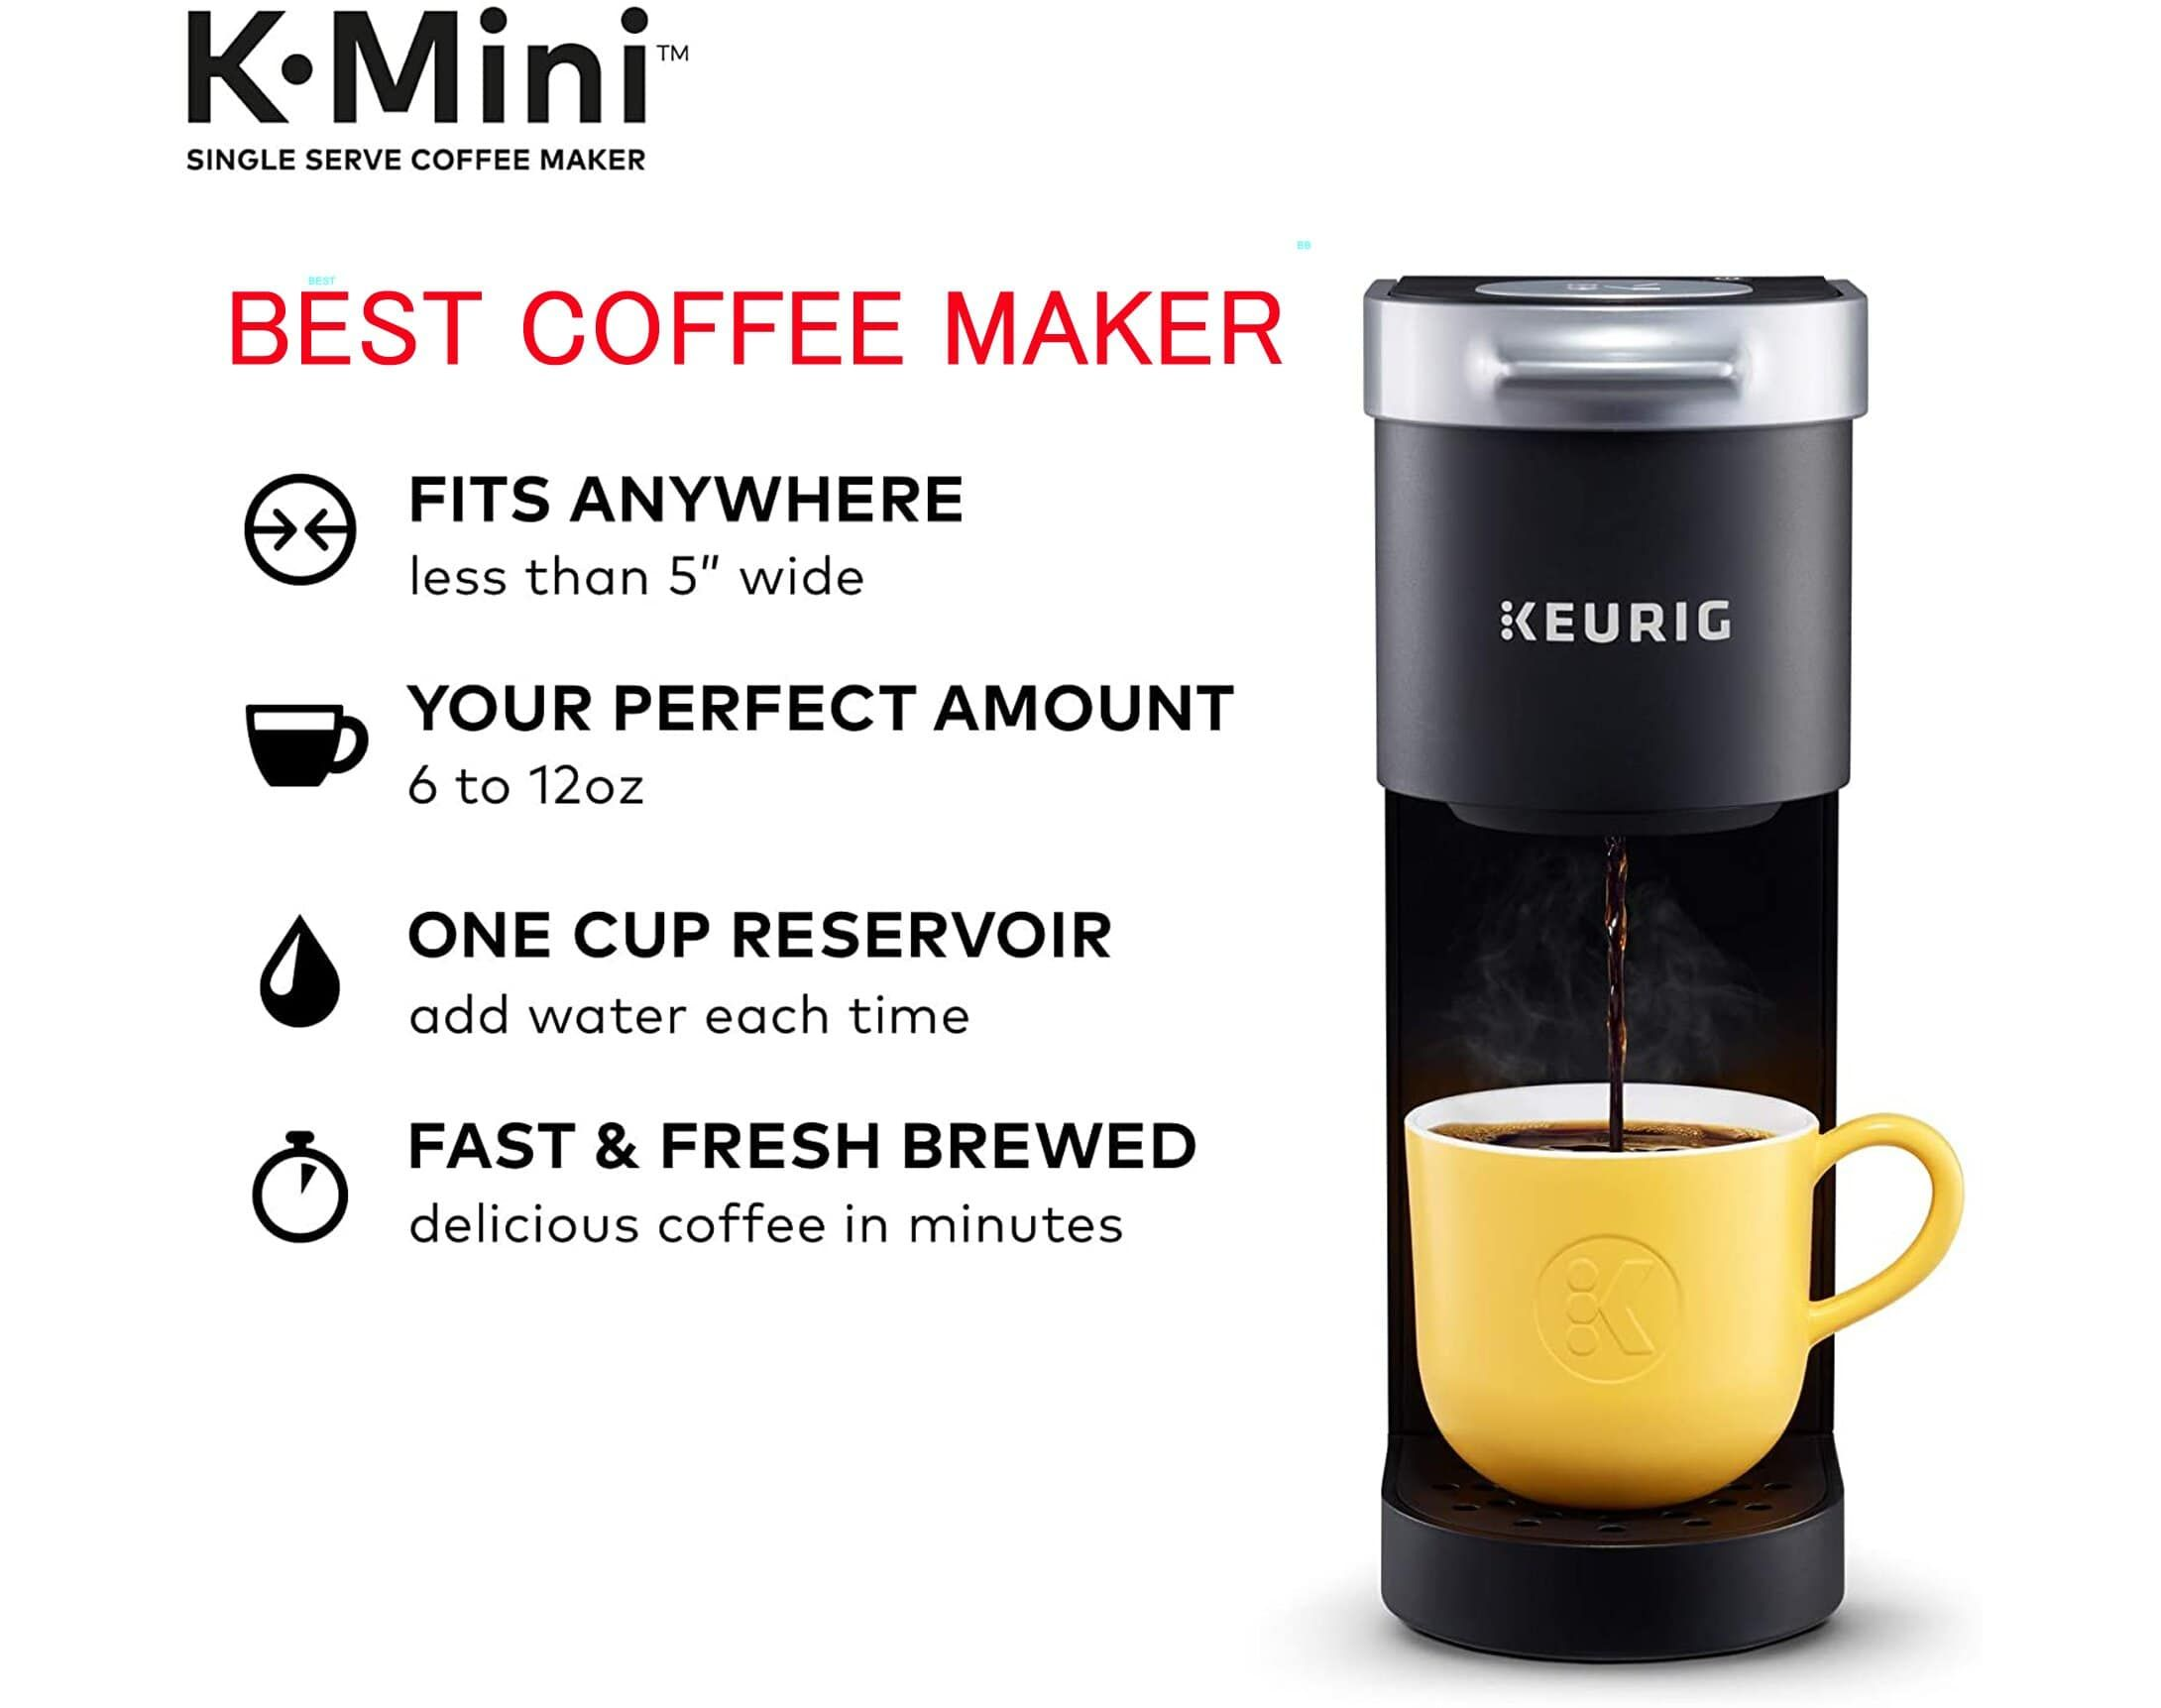 Keurig K Mini Coffee Maker Best Coffee Maker In 2020 Best Coffee Maker Best Coffee Single Serve Coffee Makers